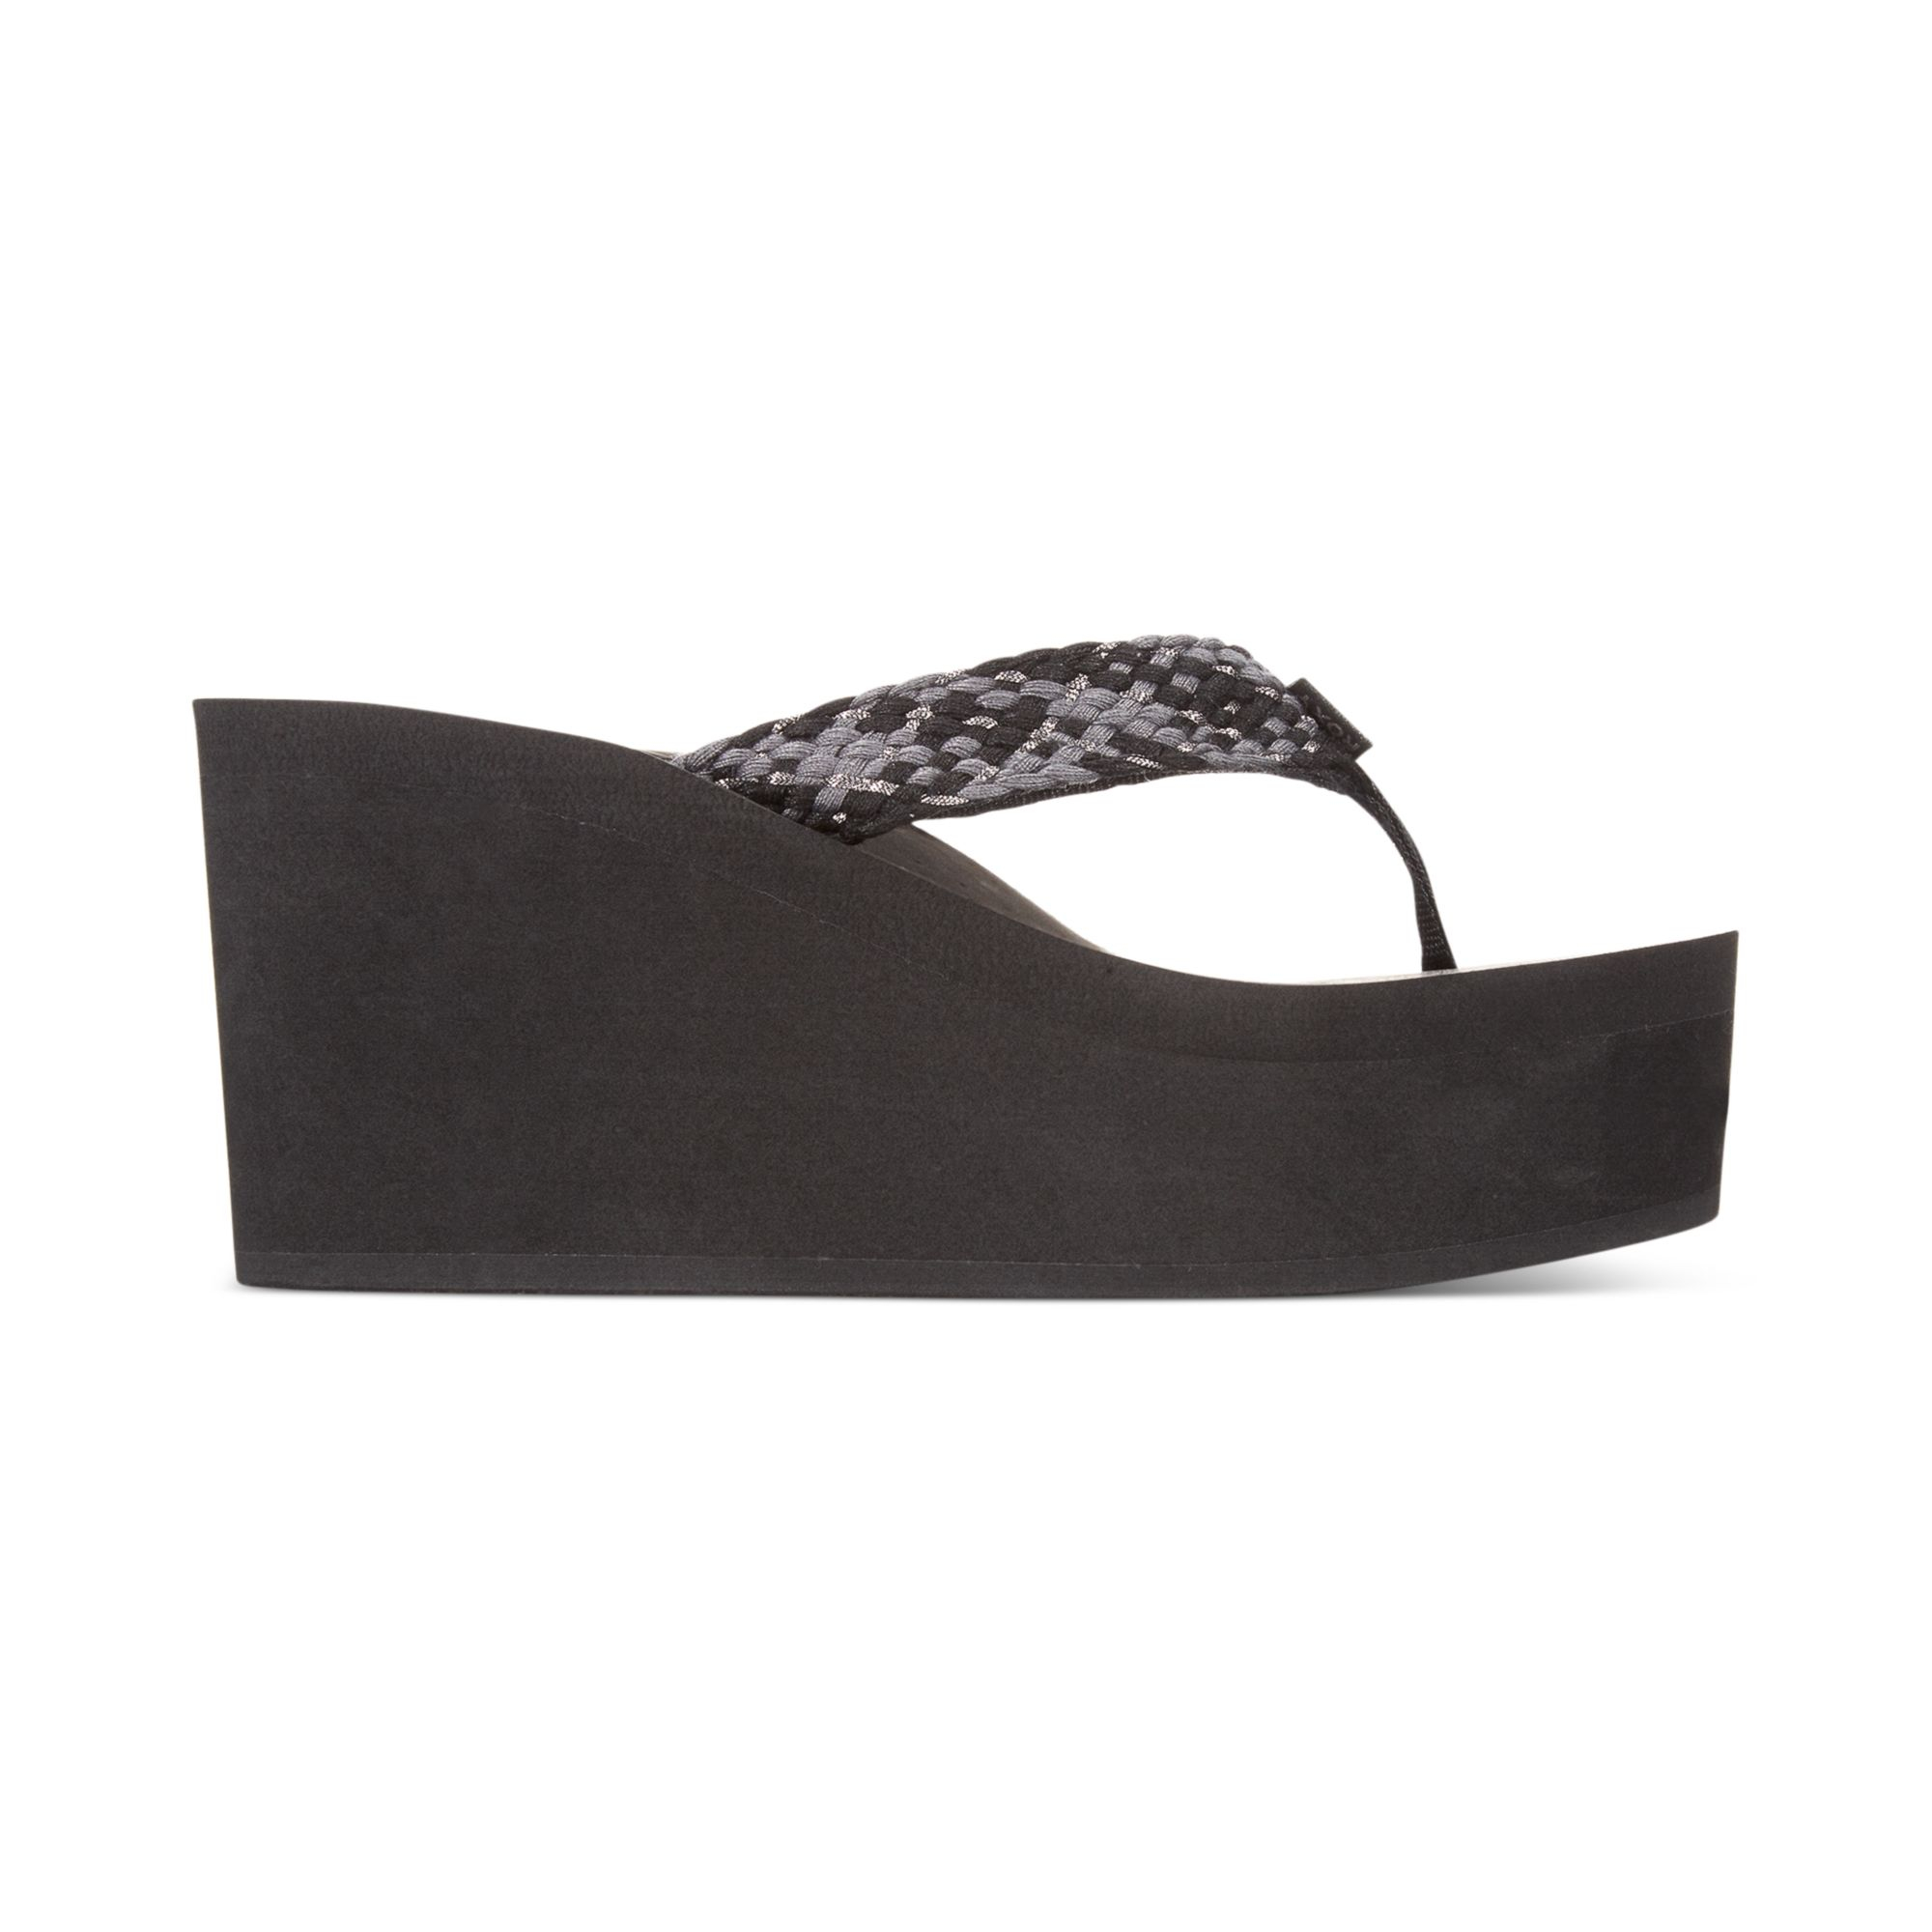 Roxy Palika Platform Wedge Flip Flops In Black - Lyst-8392